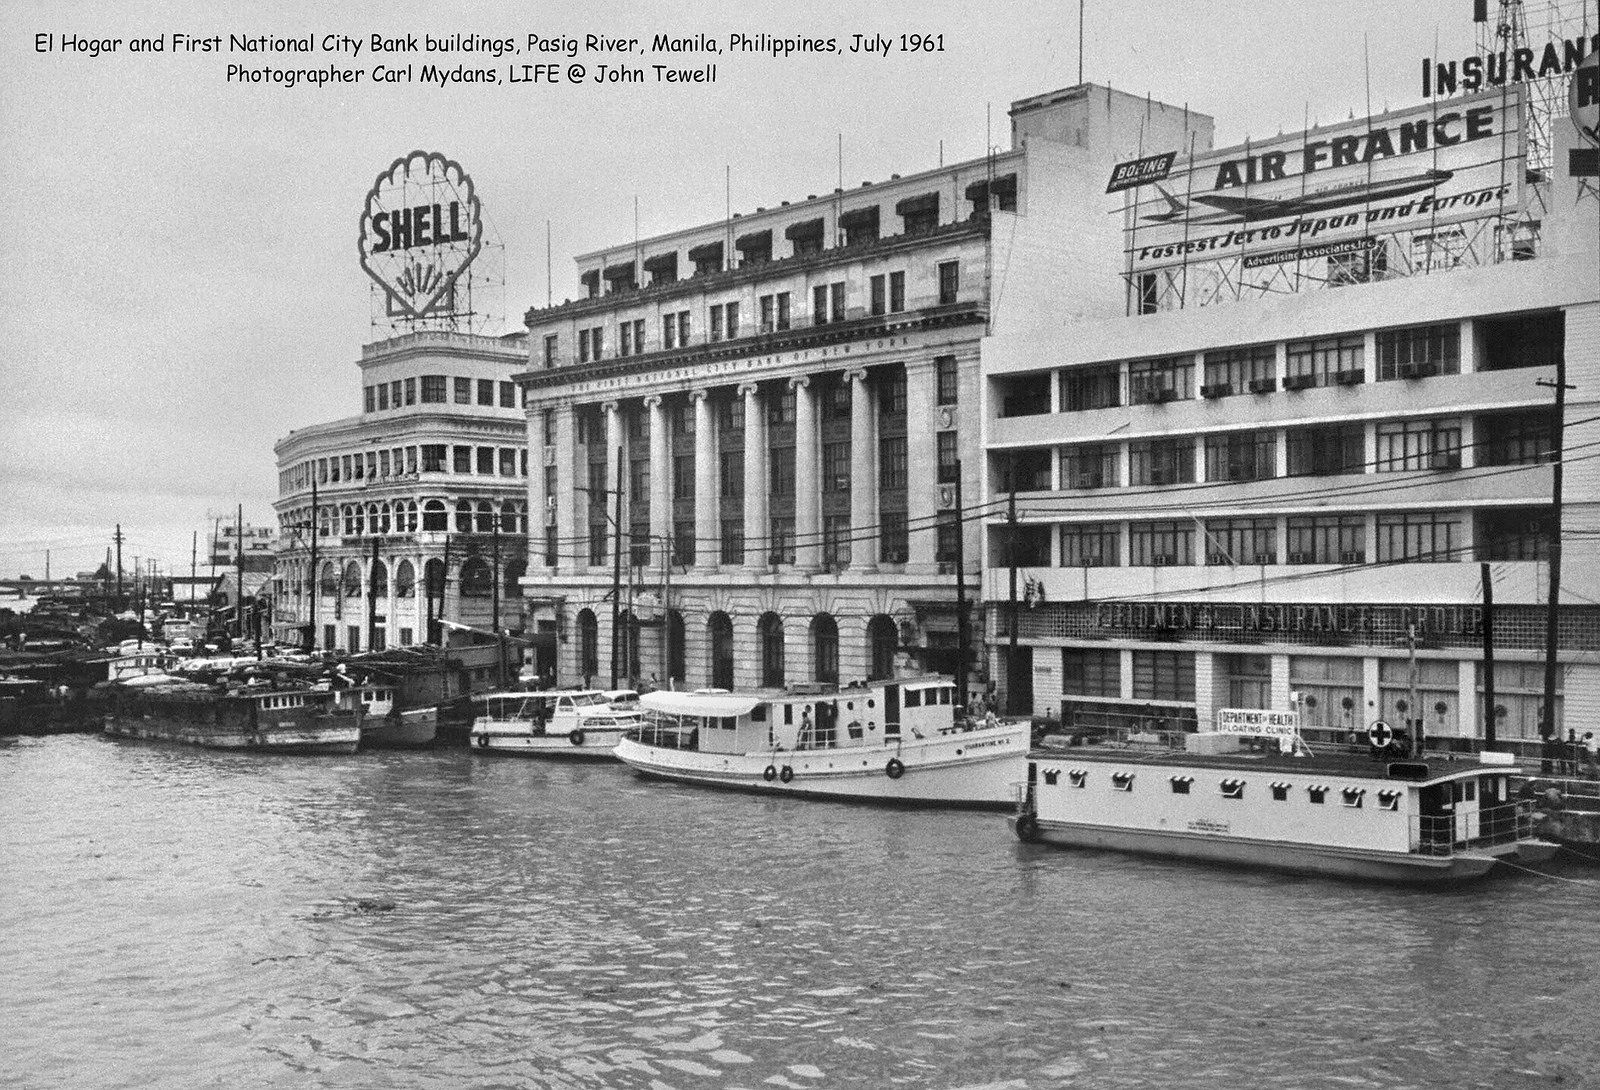 El Hogar and First National City Bank buildings, Pasig